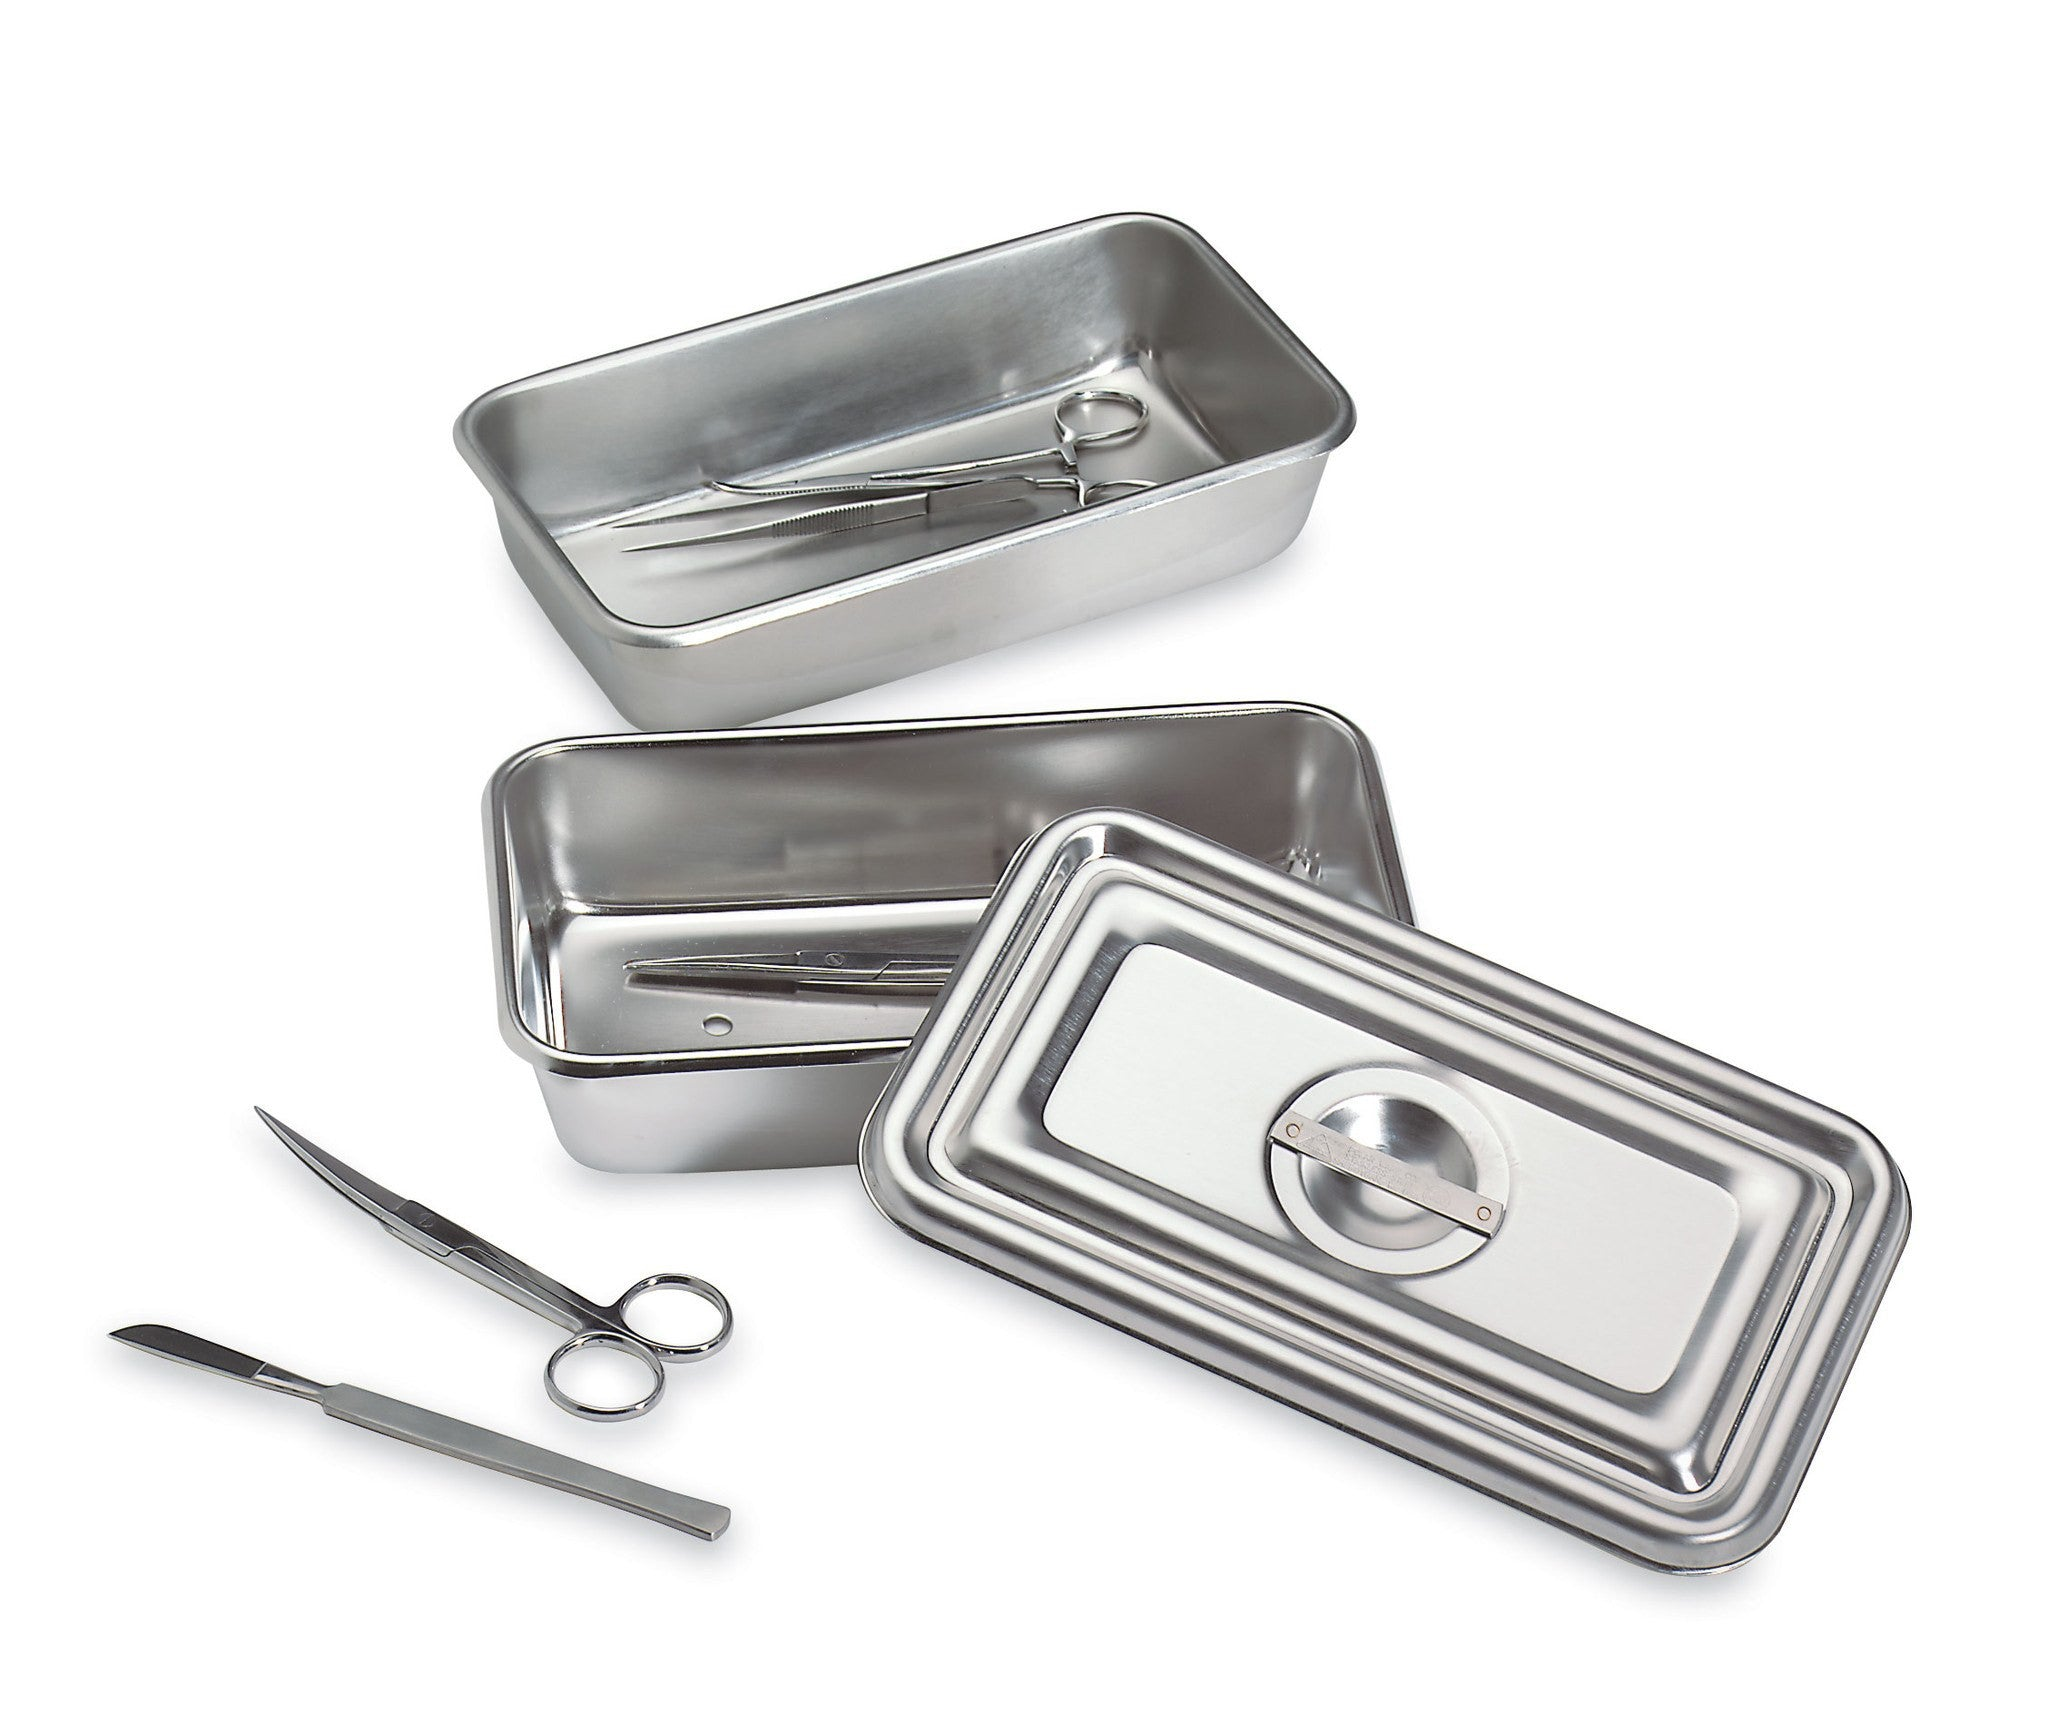 Buy Stainless Steel Instrument Tray with Lid online used to treat Surgical Instruments - Medical Conditions